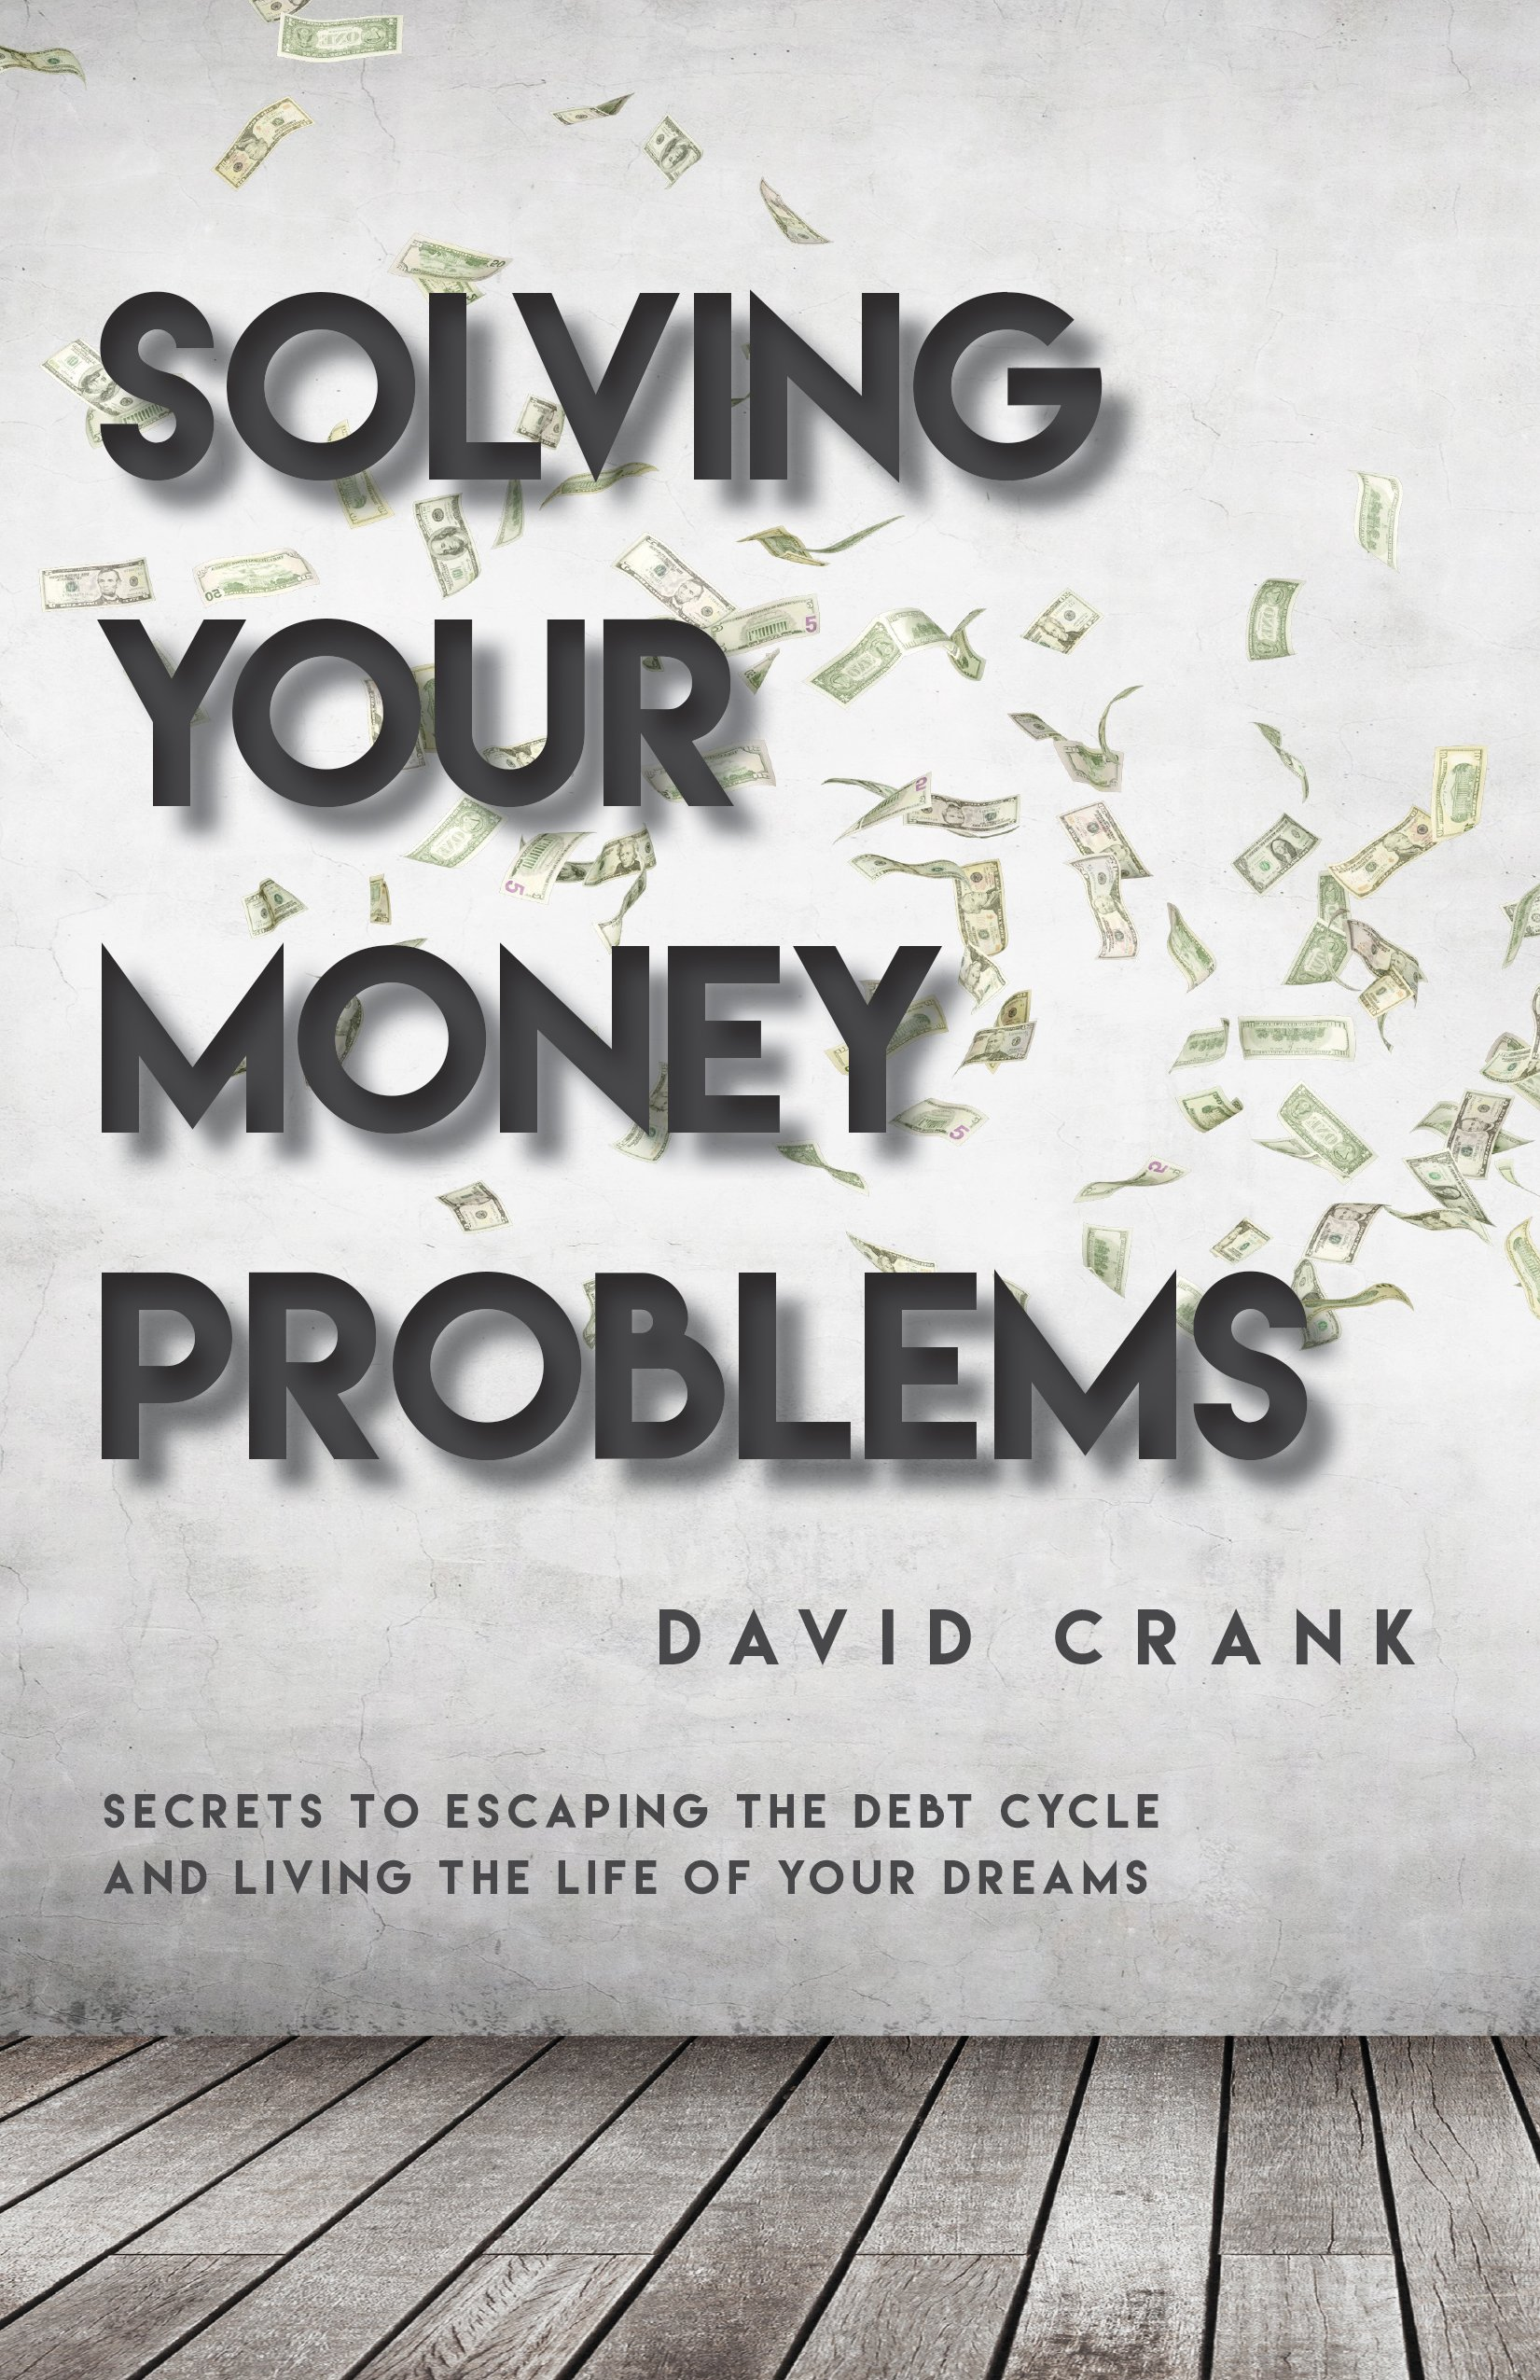 Solving Your Money Problems: Secrets to Escaping the Debt Cycle and Living the Life of Your Dreams